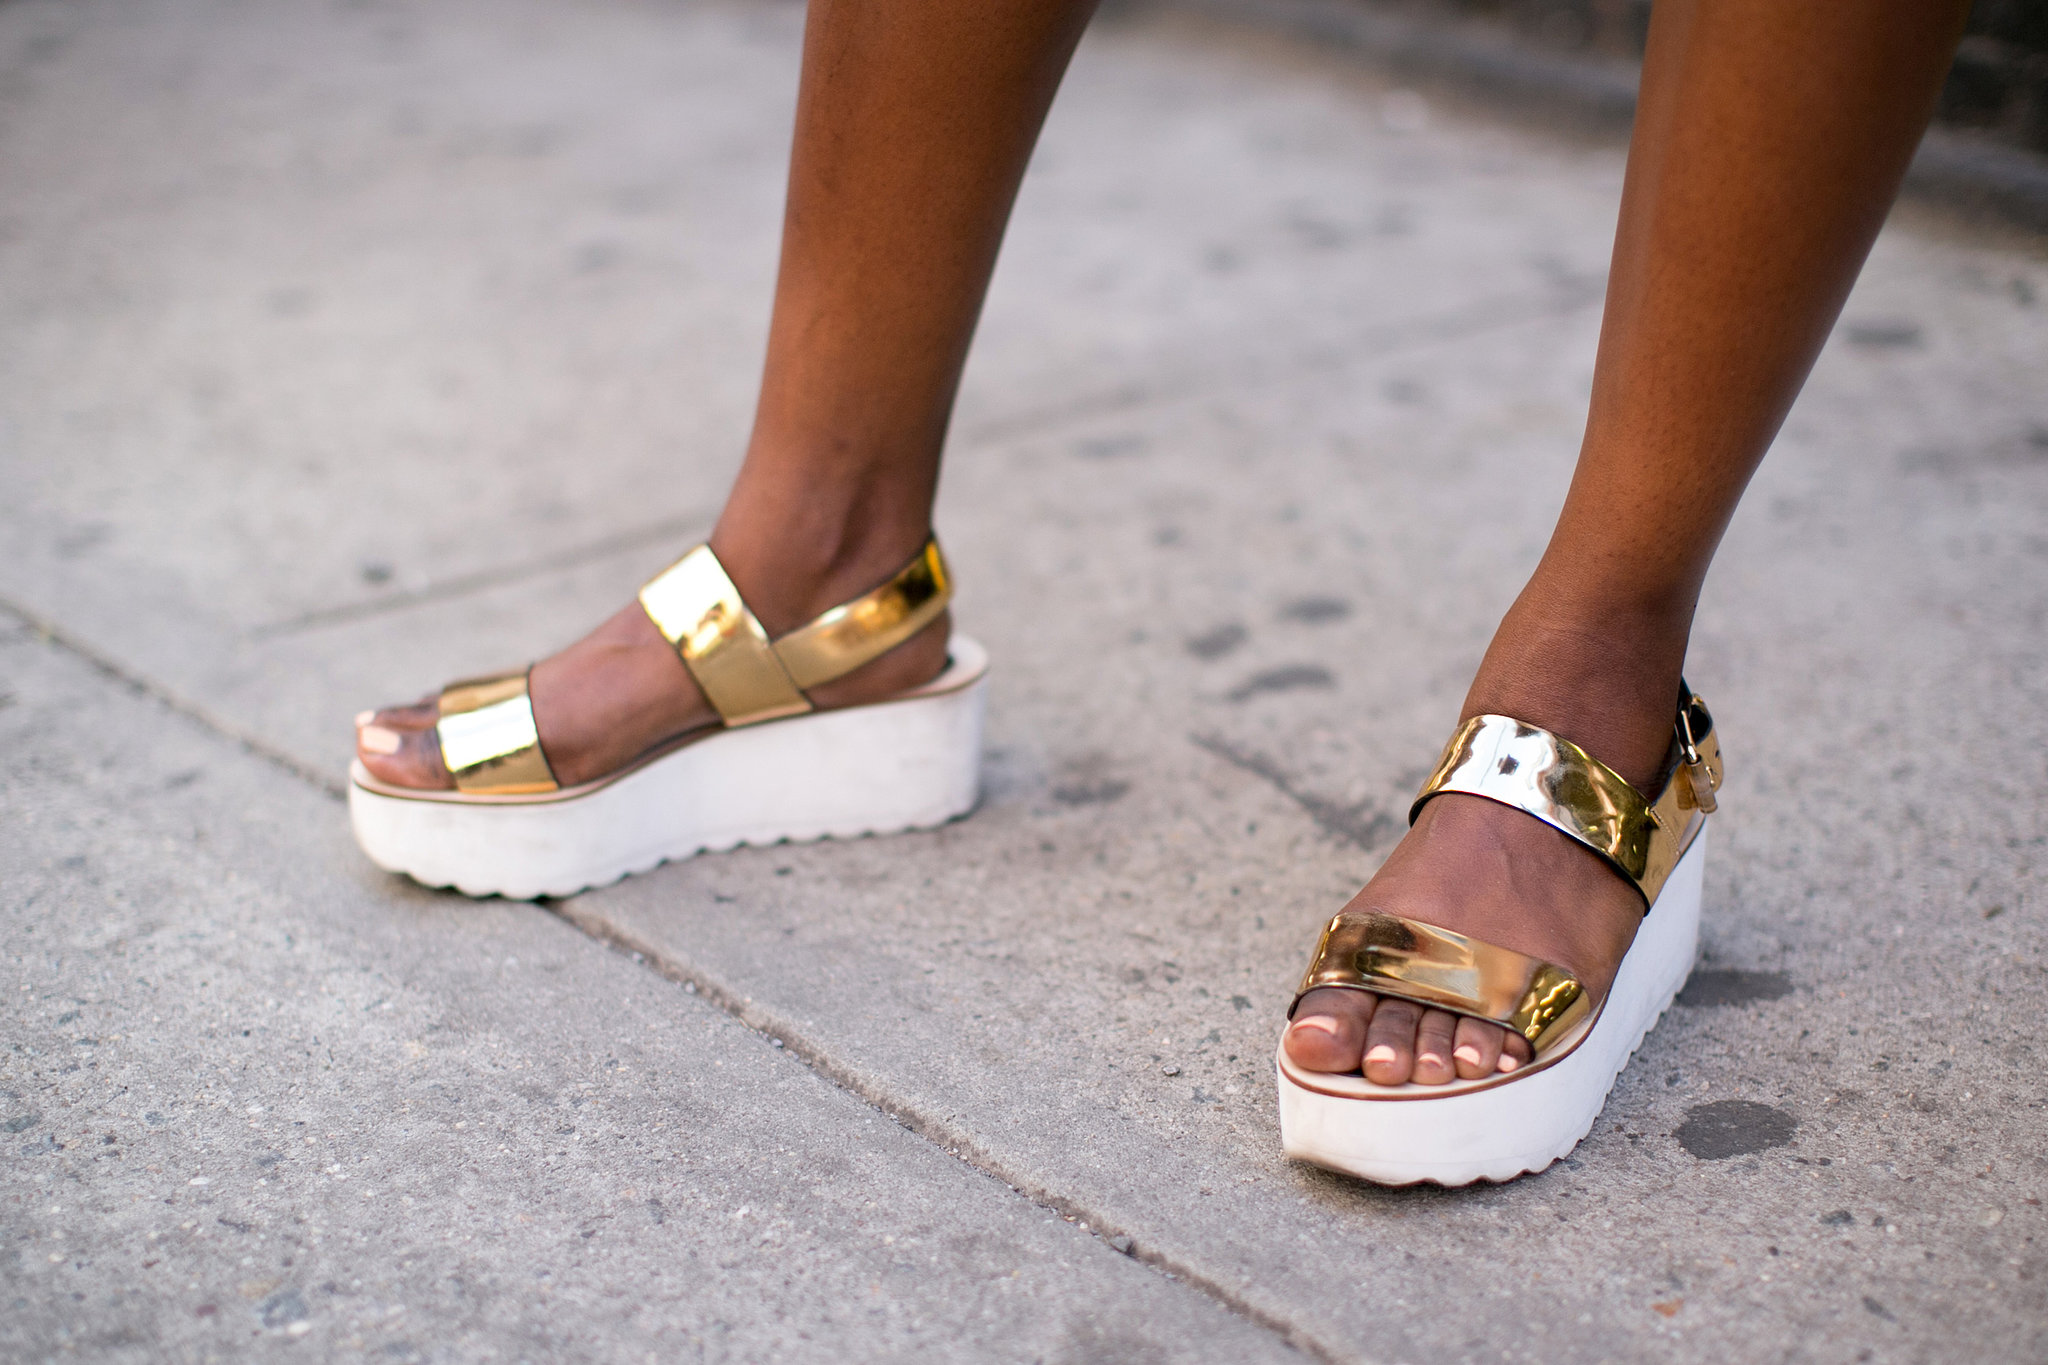 Flatforms in this metallic gold finish were made for turning heads.